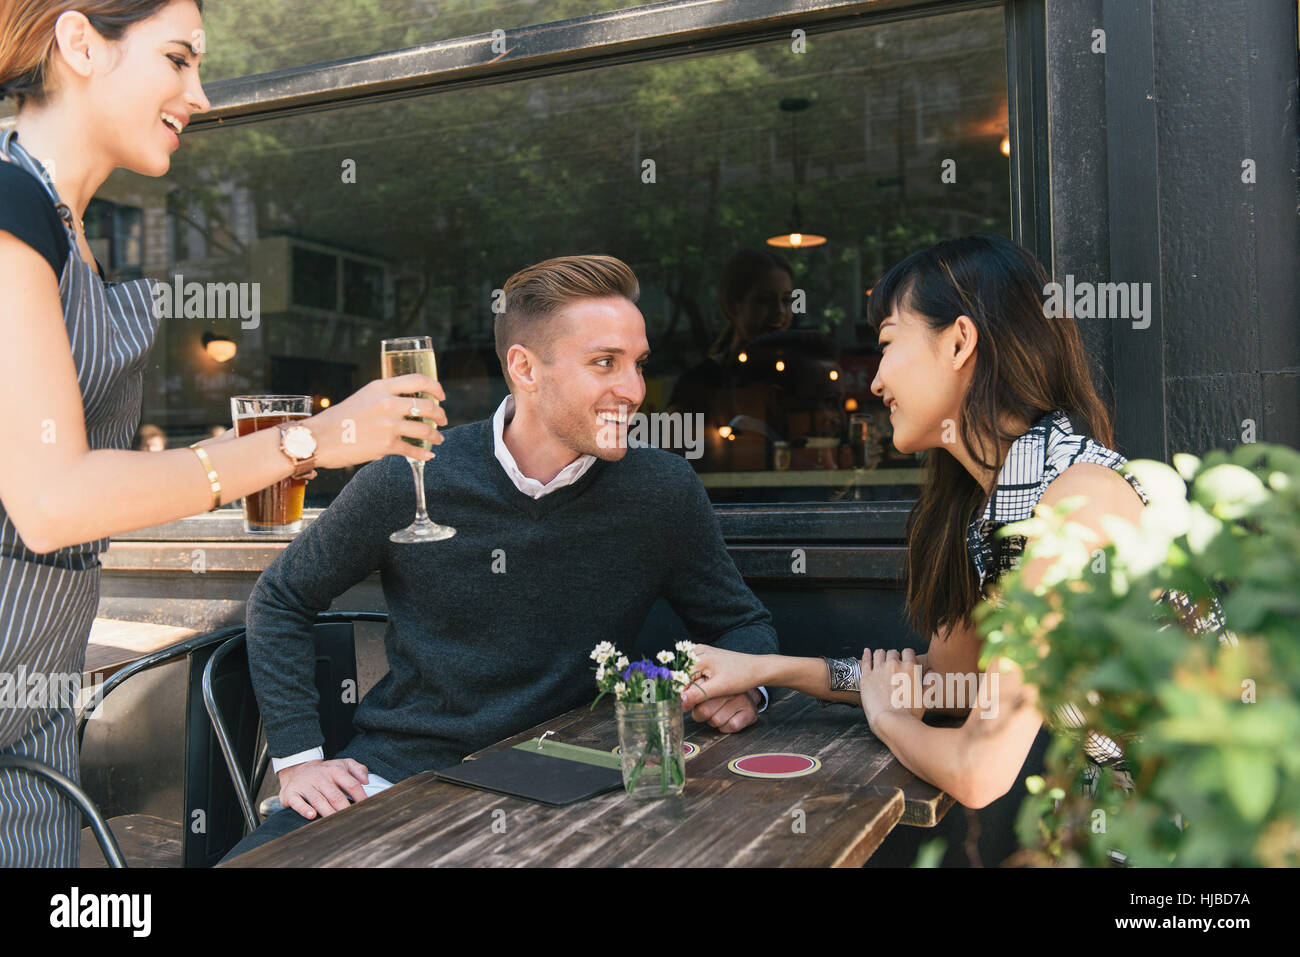 Young couple sitting outside bar, being served drinks by bar worker - Stock Image